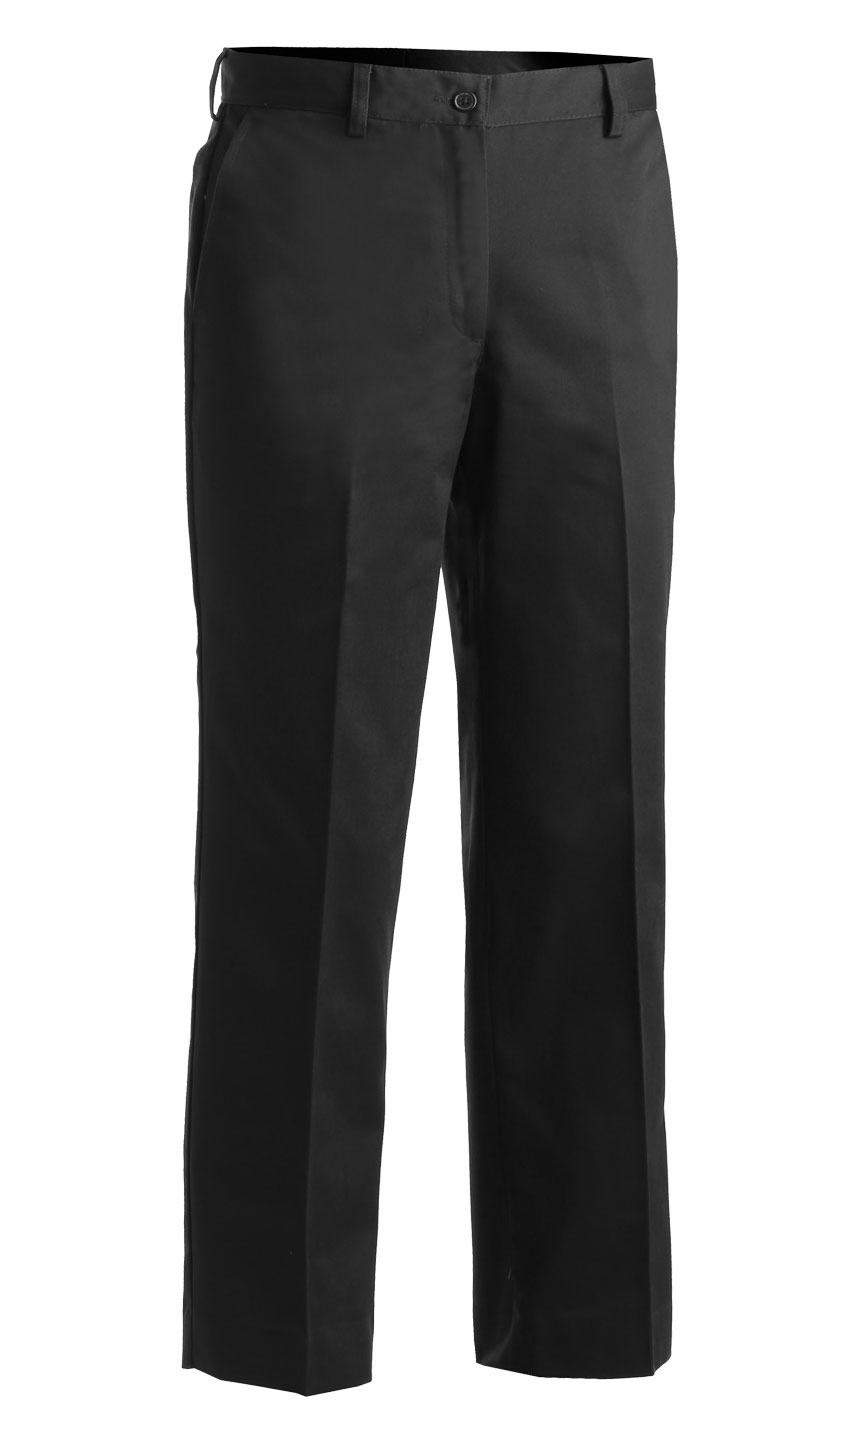 Womens Flat Front Pant